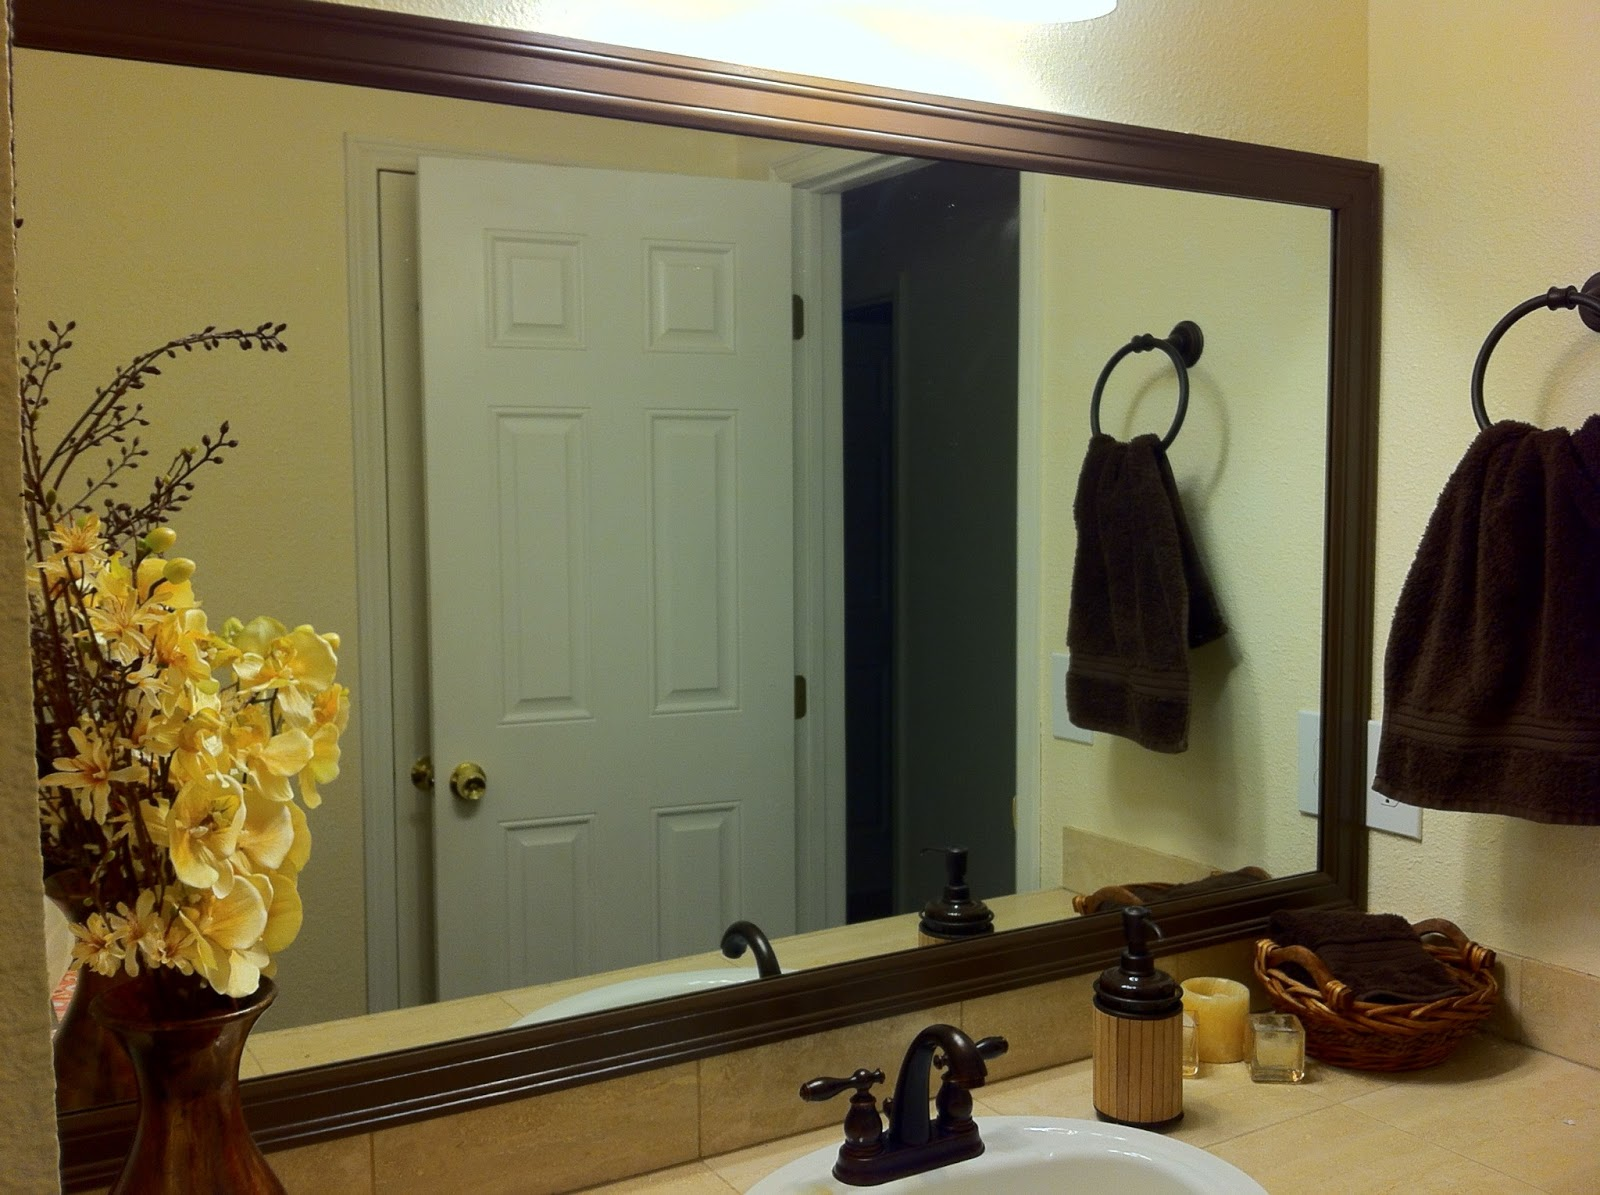 diy bathroom mirror frame for less than 20